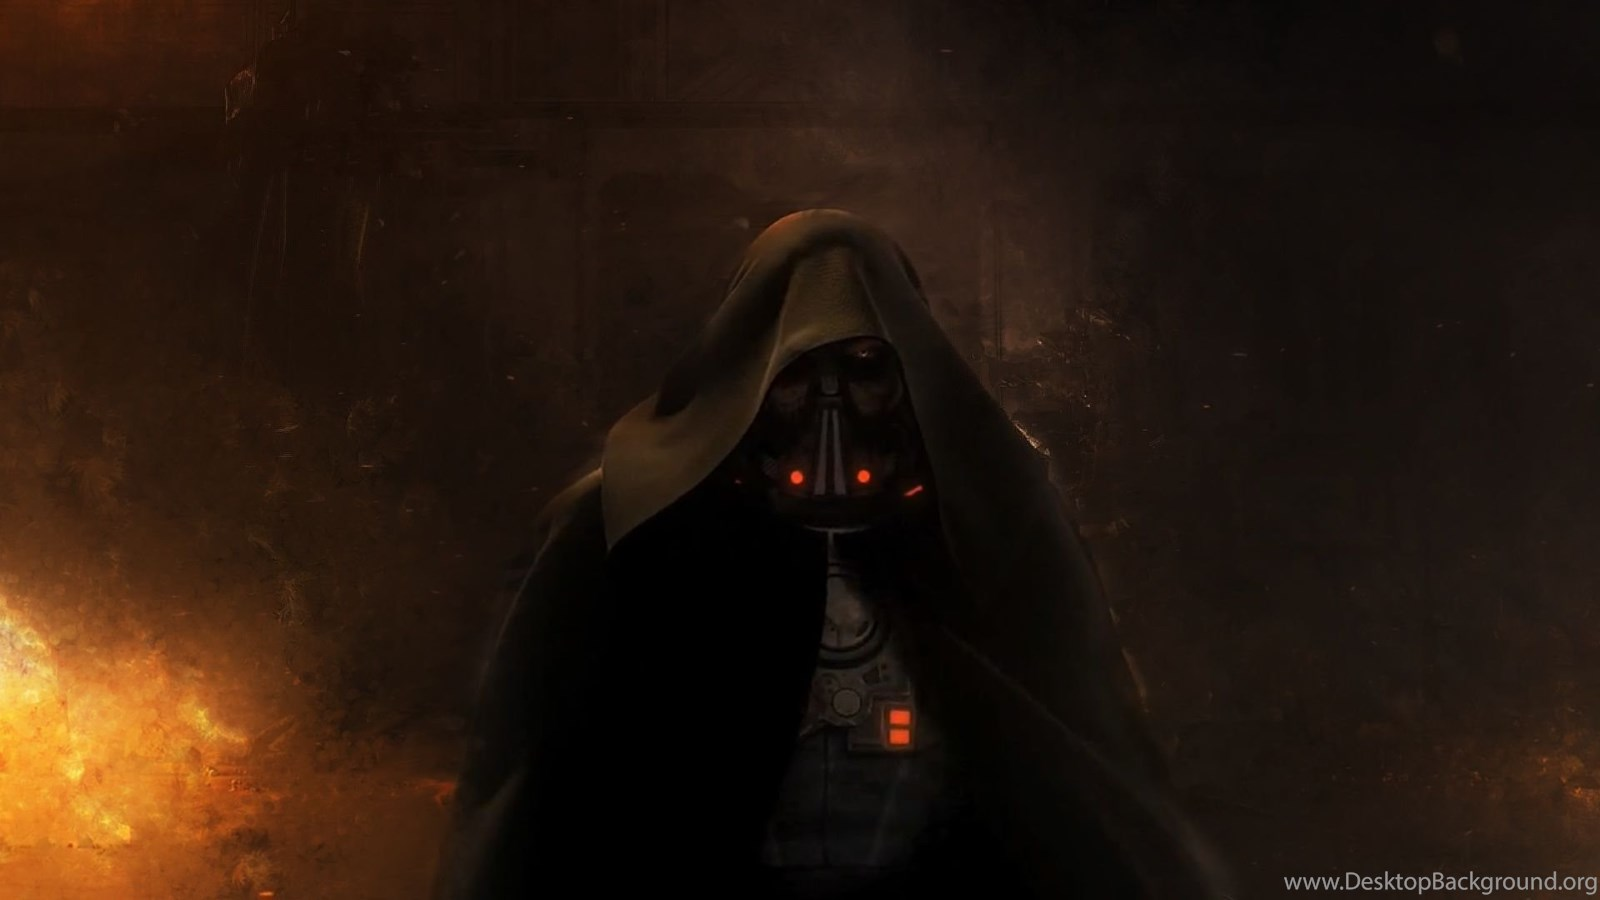 Star Wars Sith Wallpapers Wallpapers Cave Desktop Background